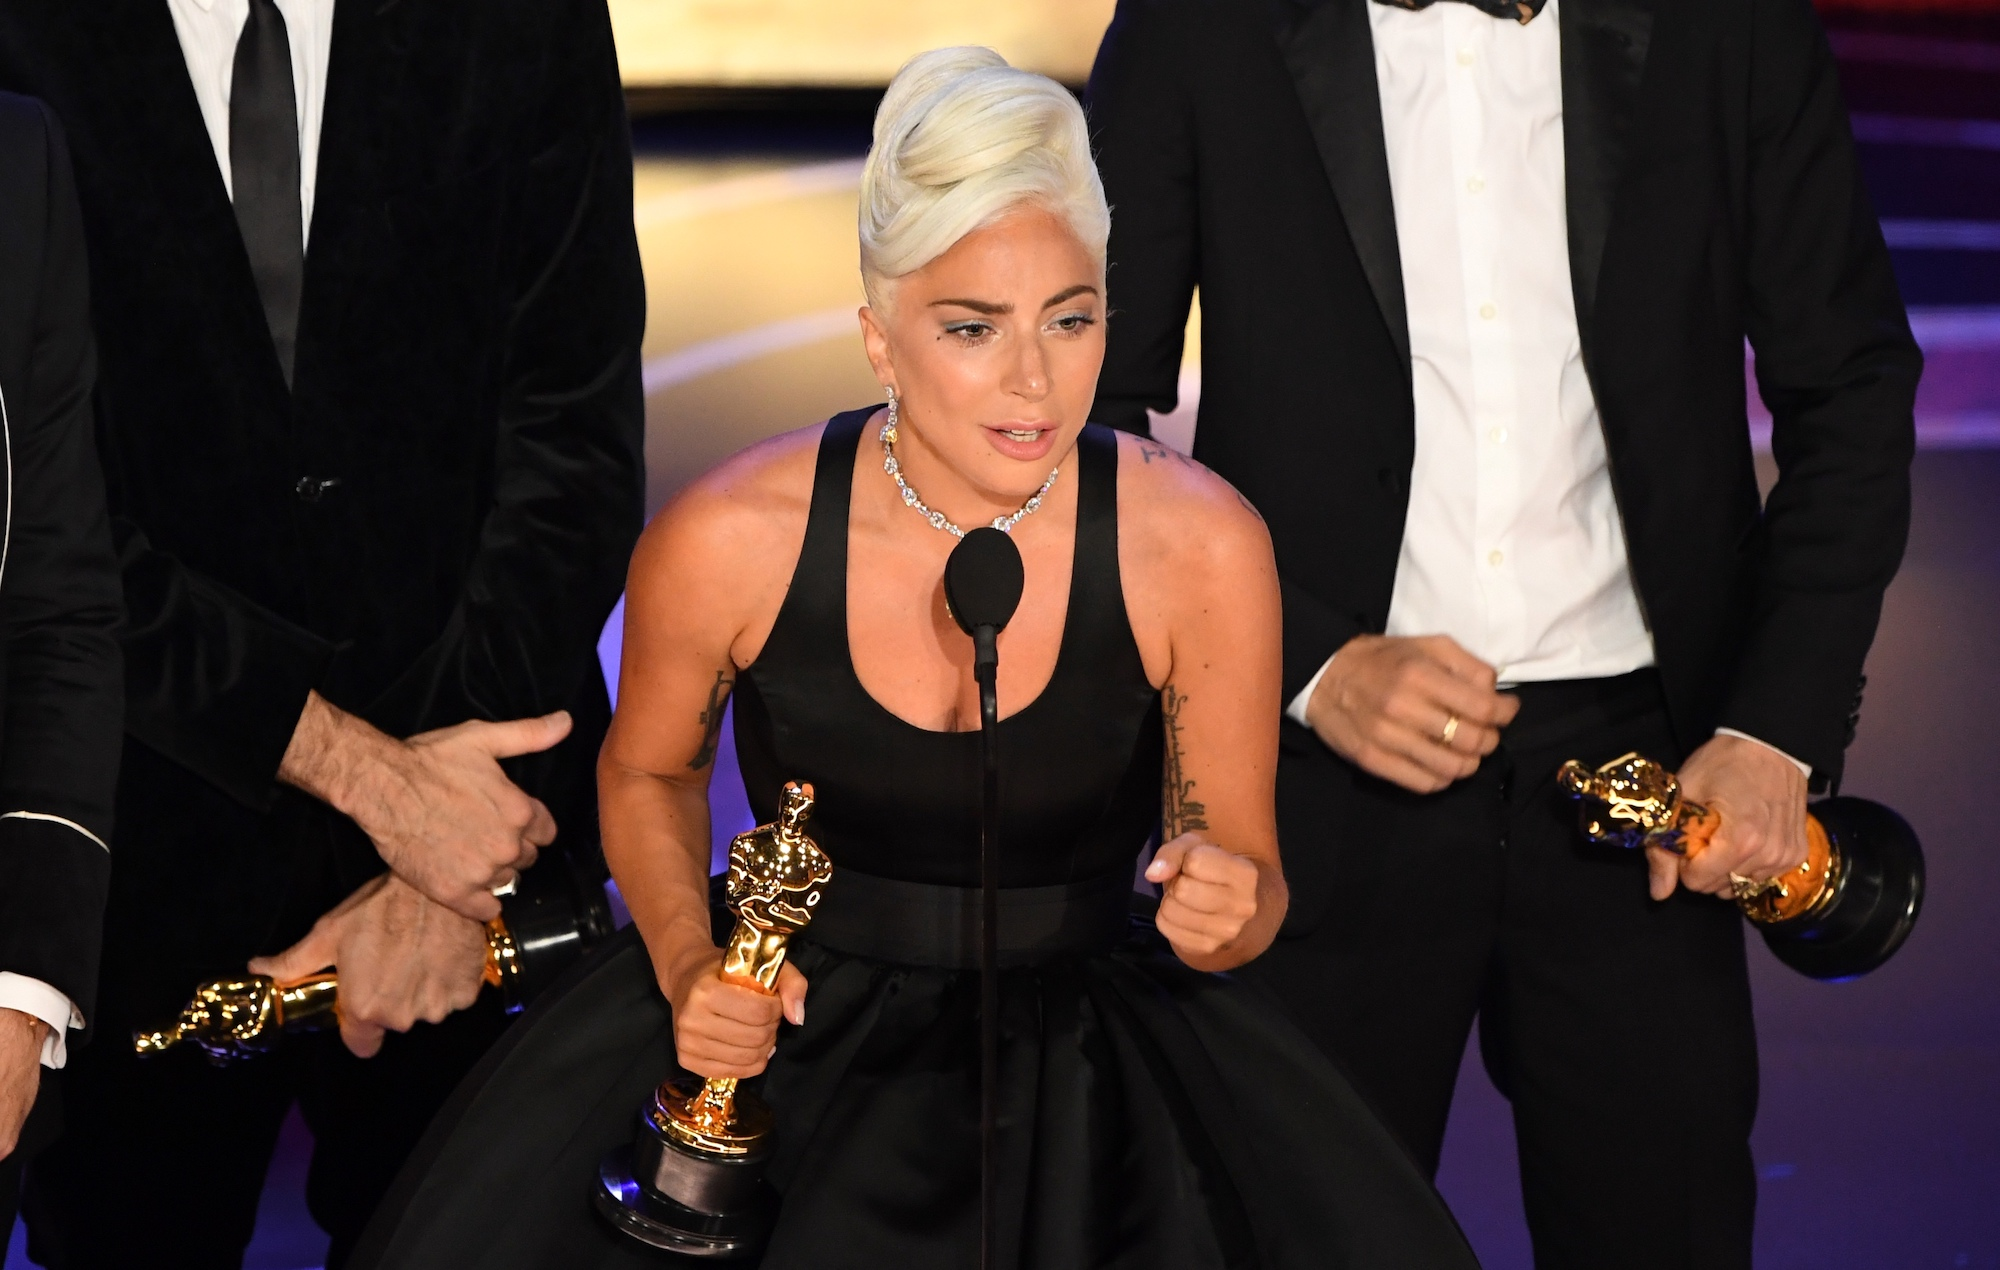 Watch Lady Gaga give impassioned speech as 'Shallow' wins at